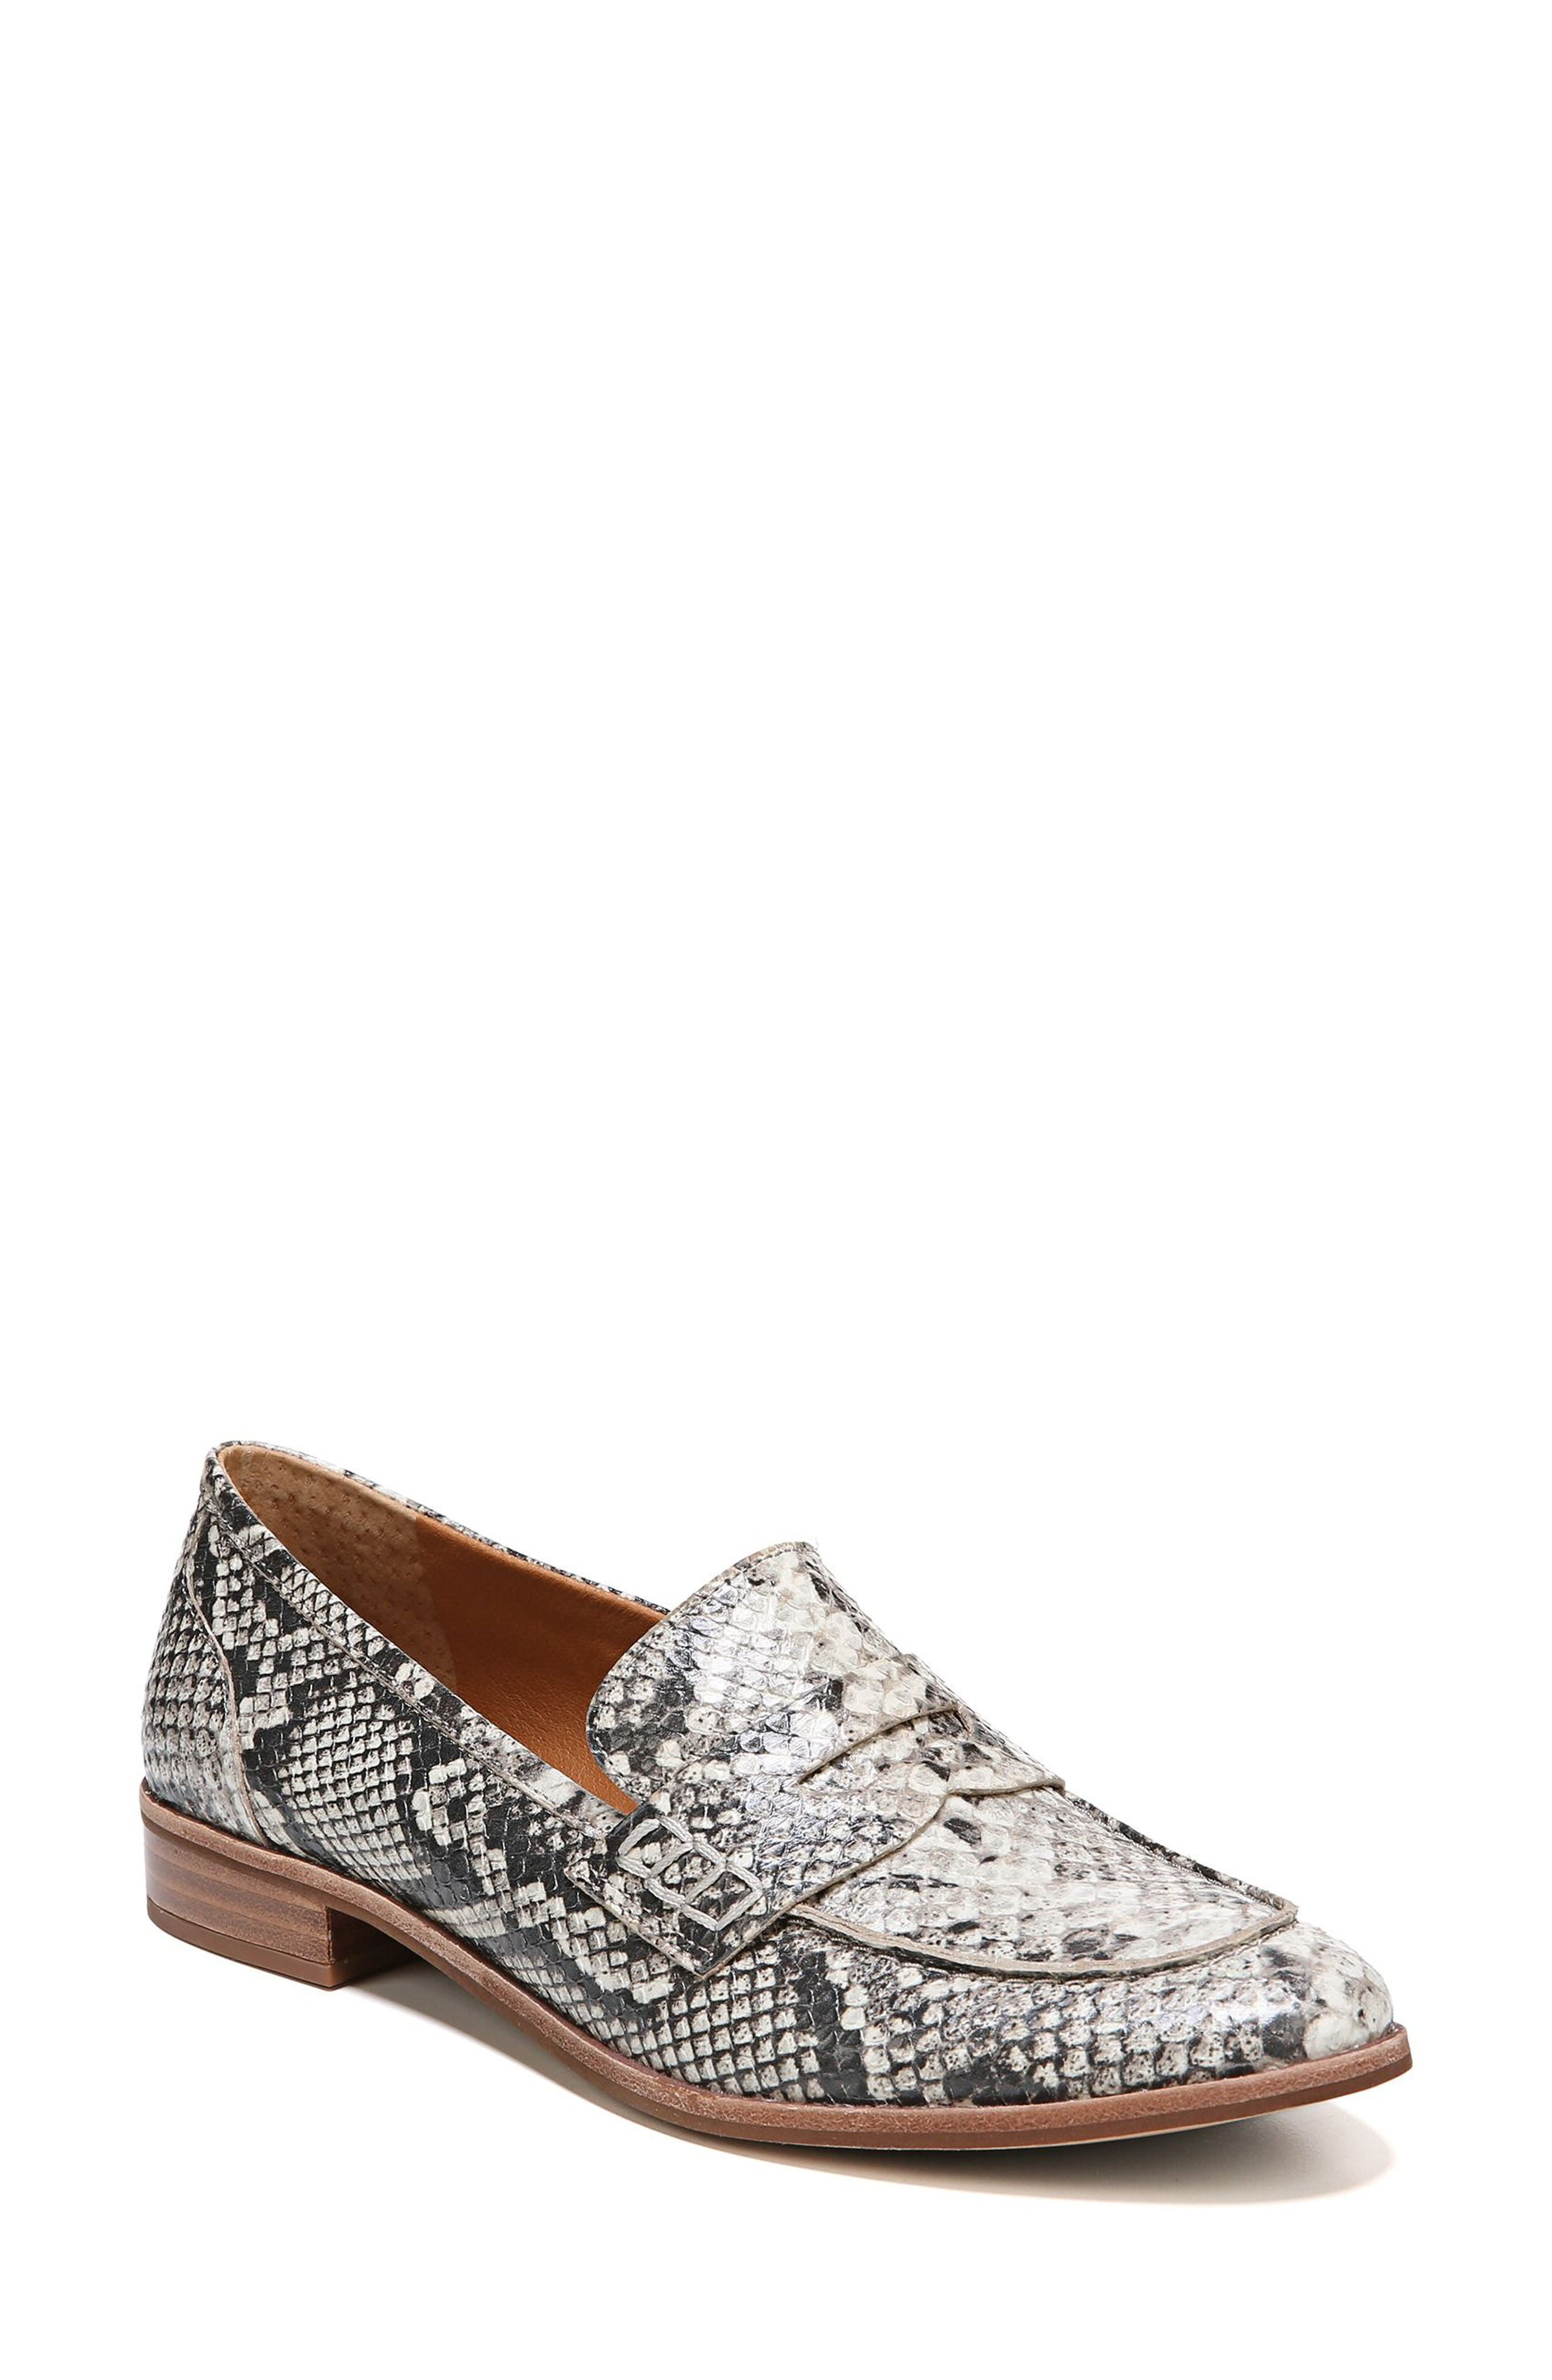 'Jolette' Penny Loafer,                             Main thumbnail 1, color,                             ROCCIA LEATHER